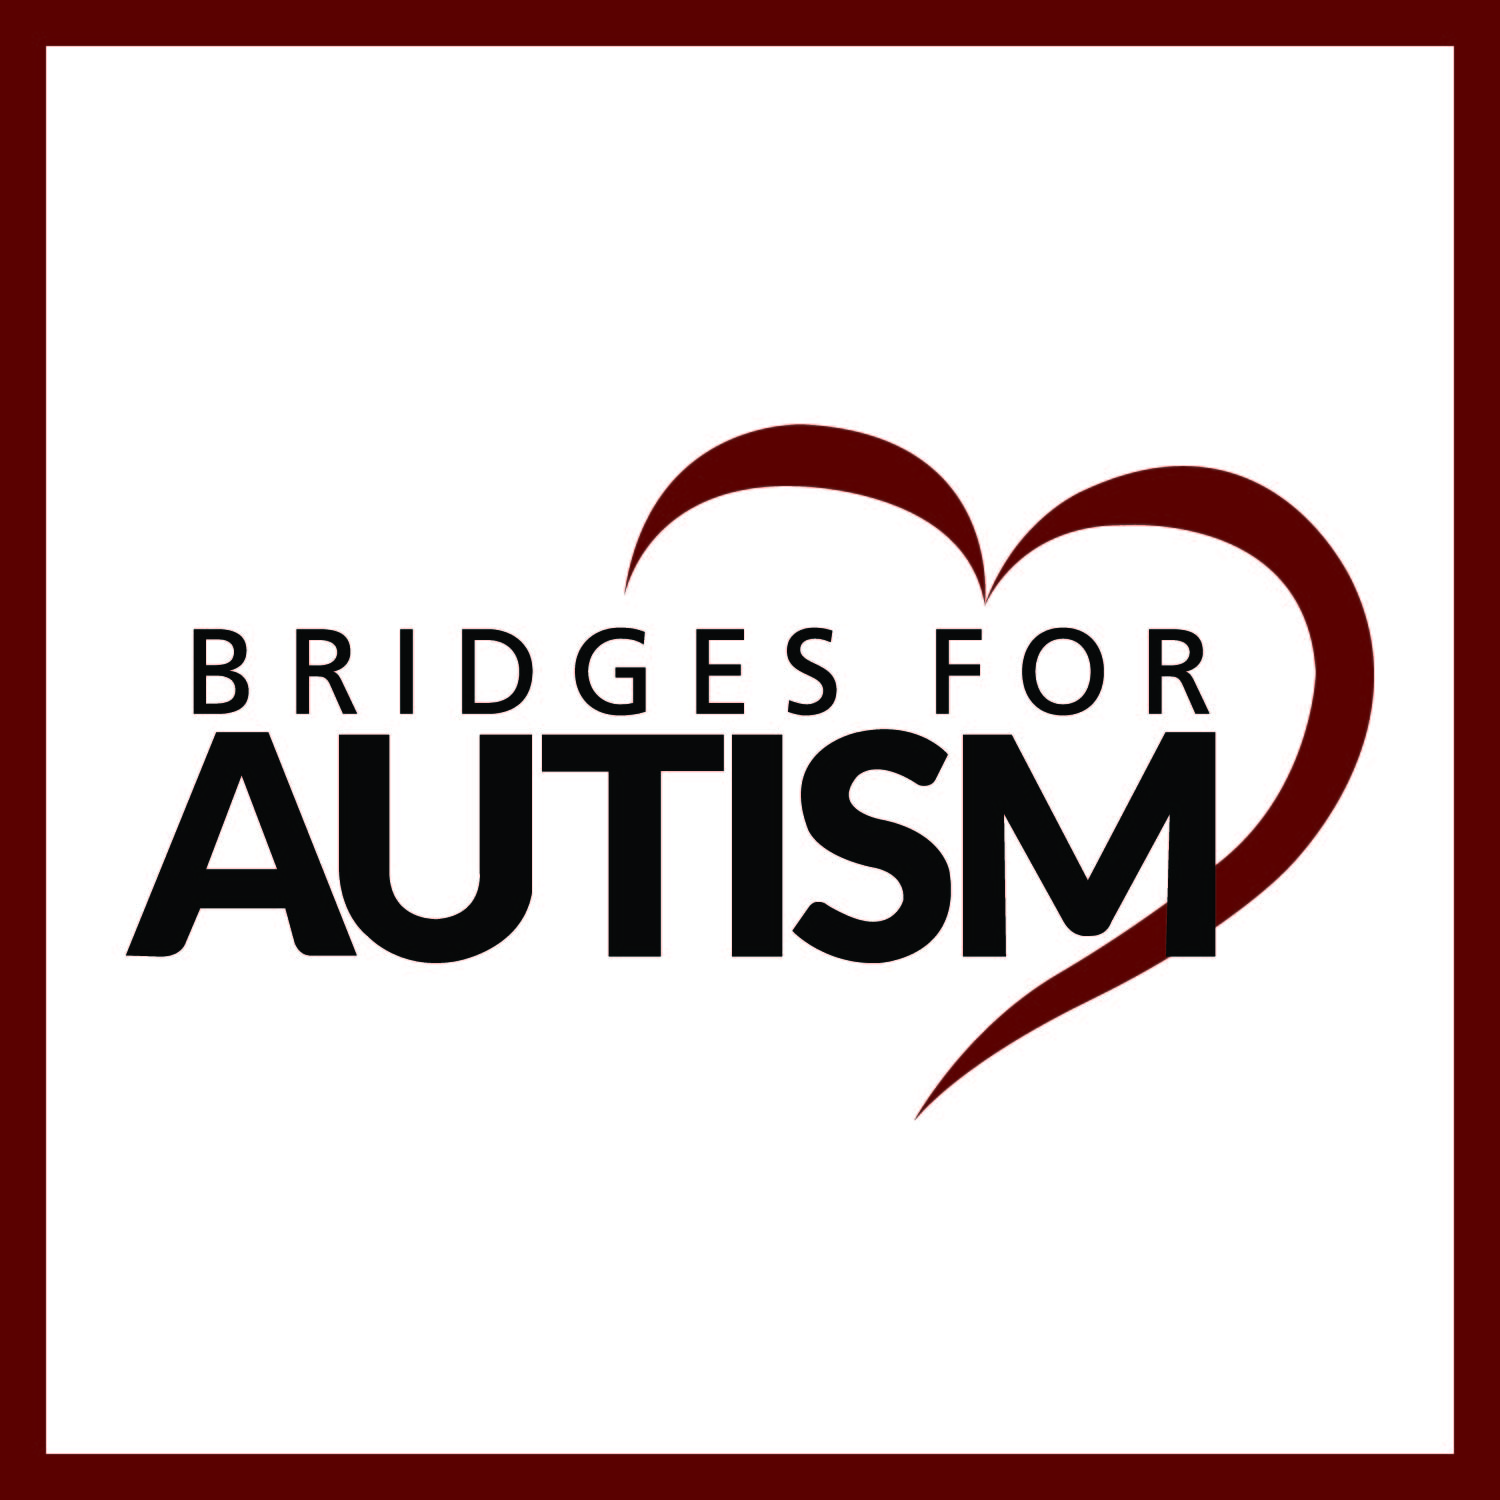 Bridges for Autism